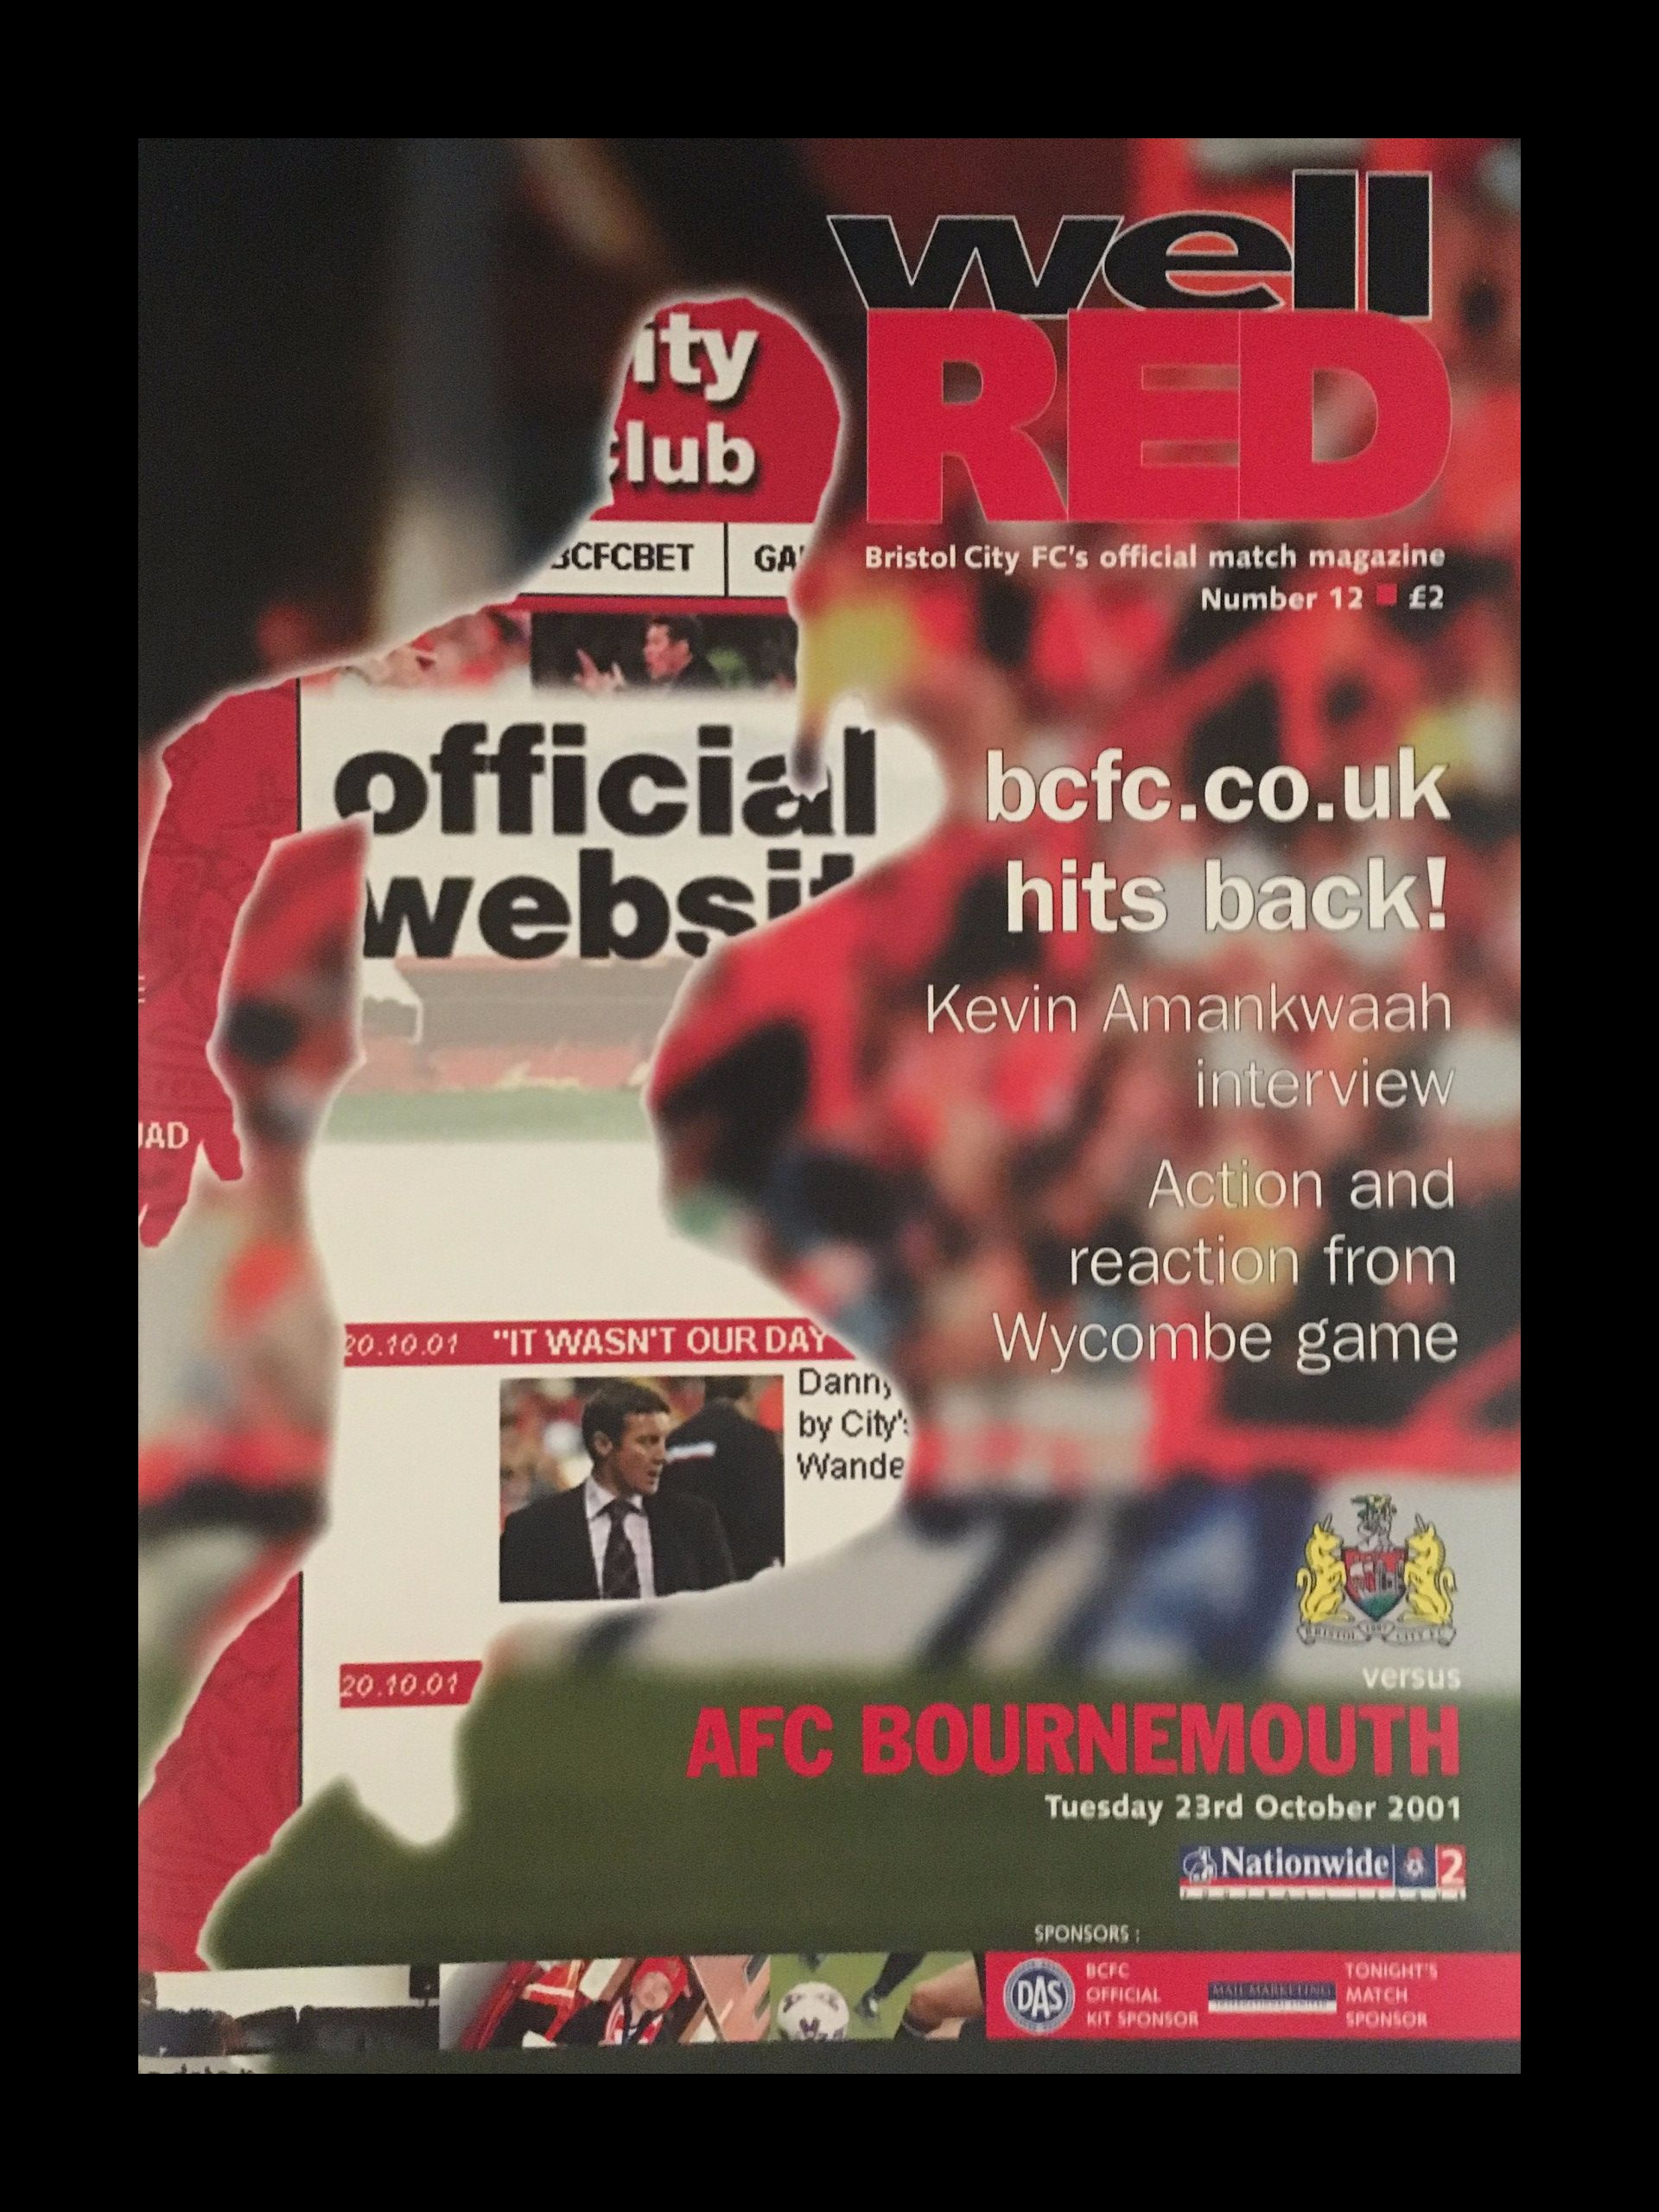 Bristol City v AFC Bournemouth 23-10-2001 Programme